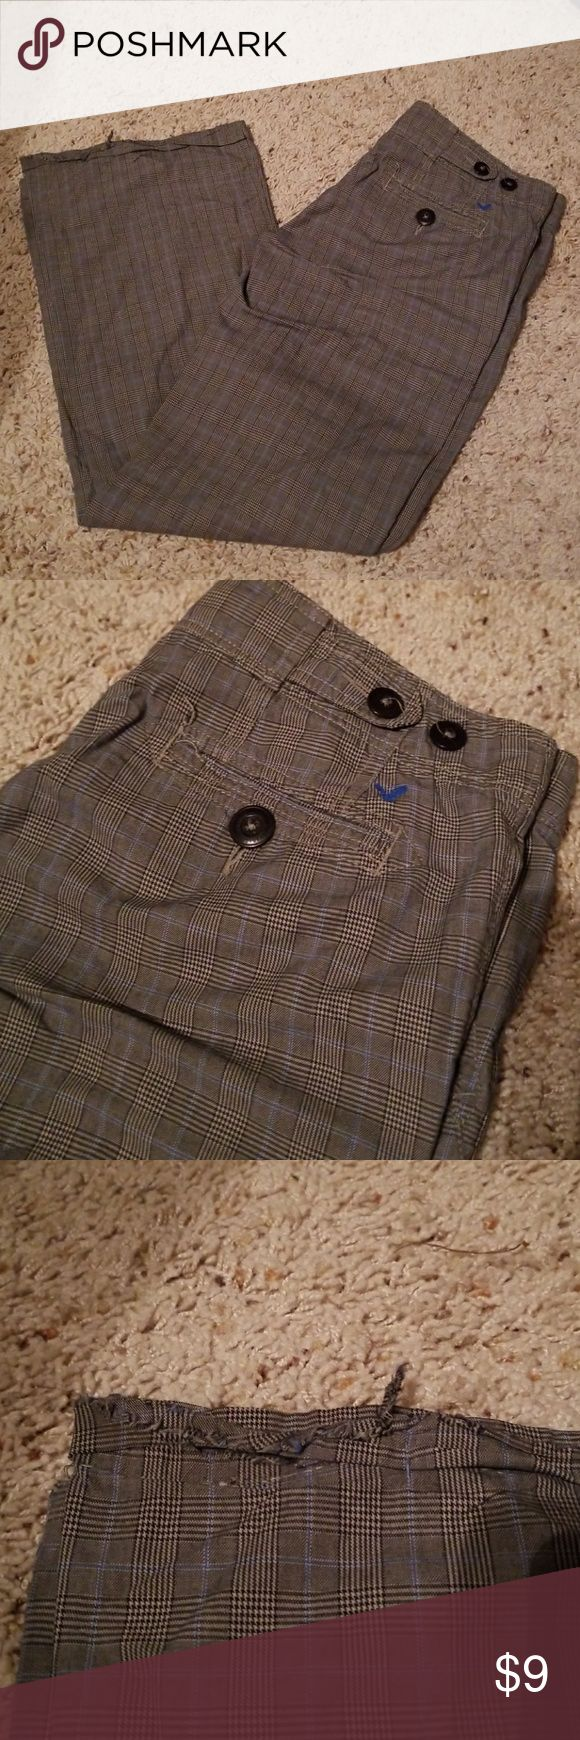 Plaid pants Black and white plaid pants with blue stripe.  Some damage to bottom hem.  Size 4.  100% cotton. American Eagle Outfitters Pants Trousers